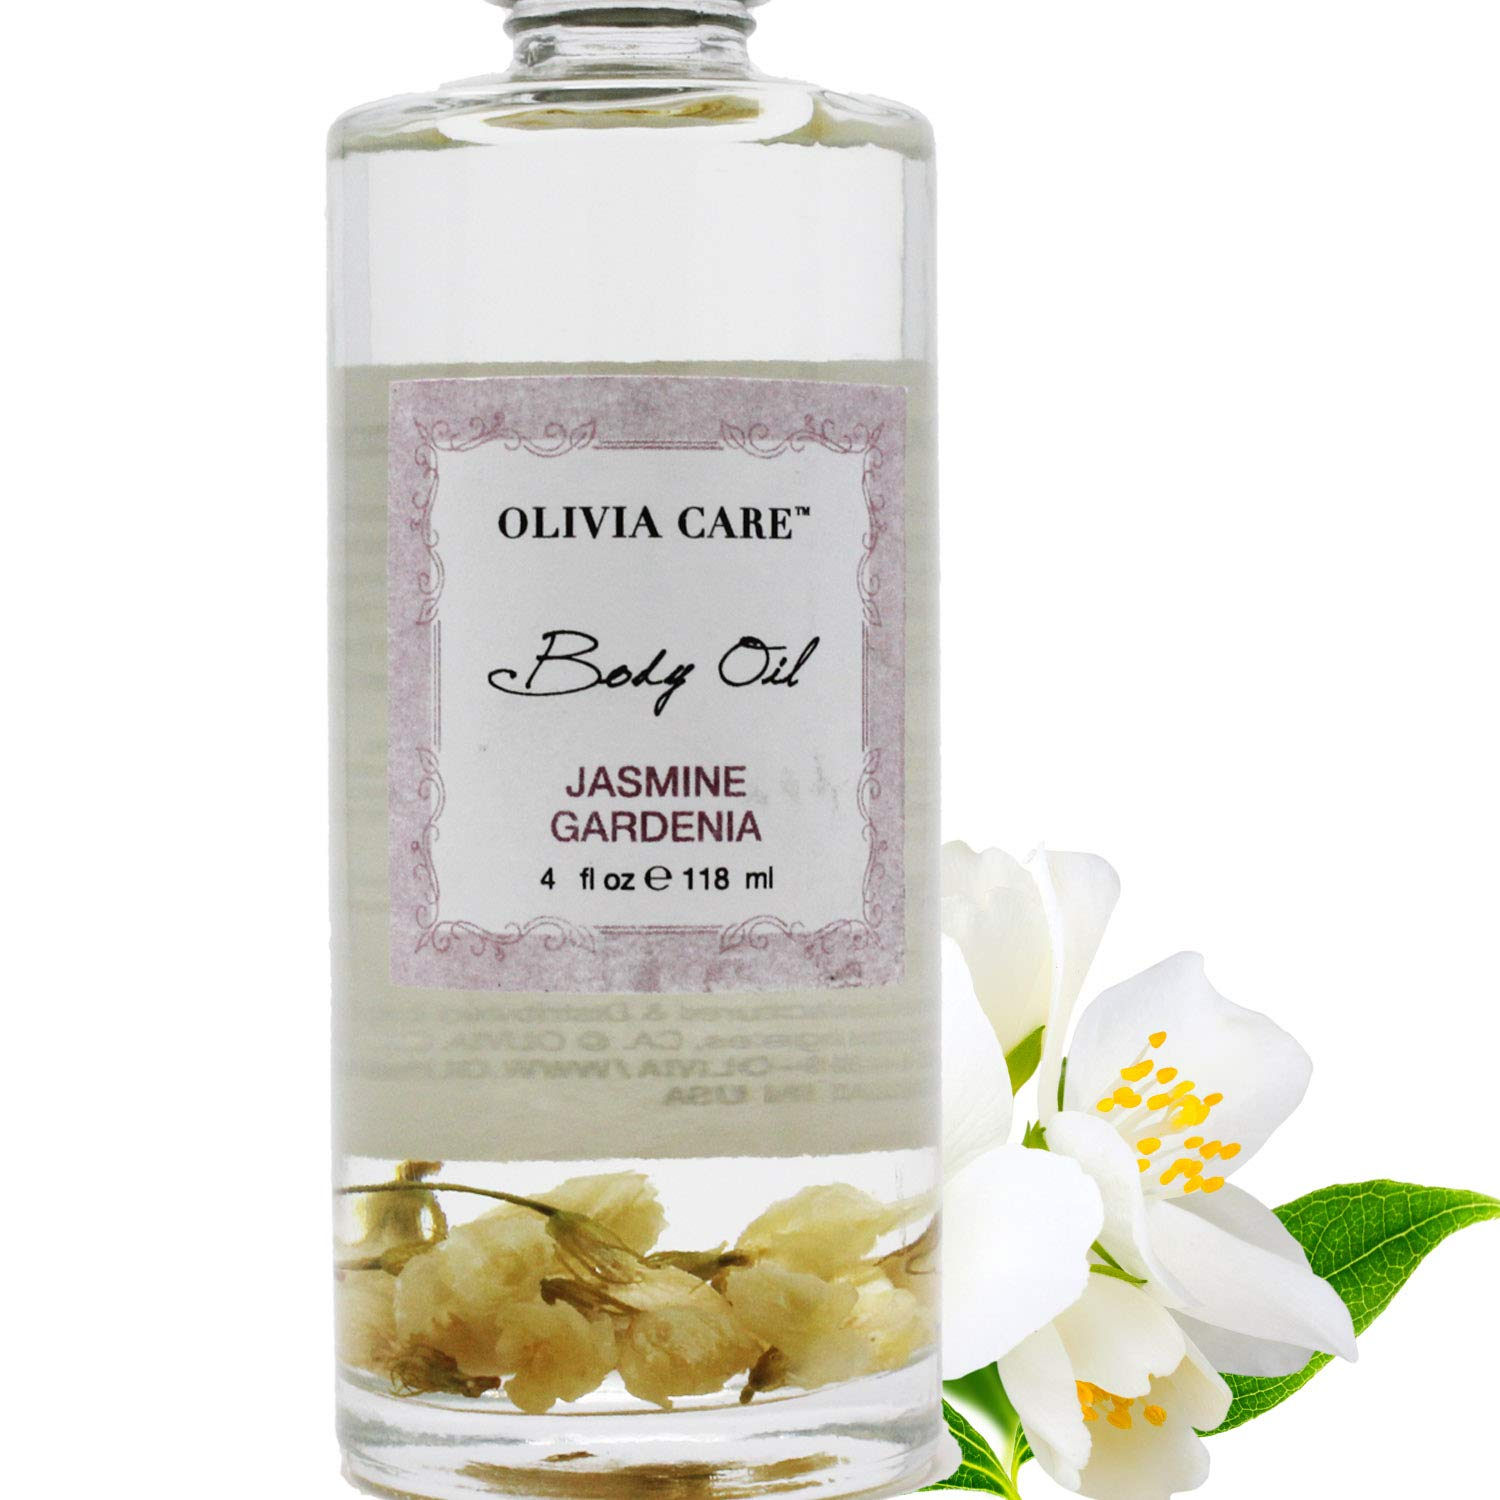 Jasmine Gardenia Body Oil By Olivia Care - Vegan & Natural - Hydrate & Moisturize. Infused with VITAMIN E, K & Omega Fatty Acids - Refreshing Fragrance - Reduce Dry Skin, Anti-Aging Properties - 4 OZ : Beauty